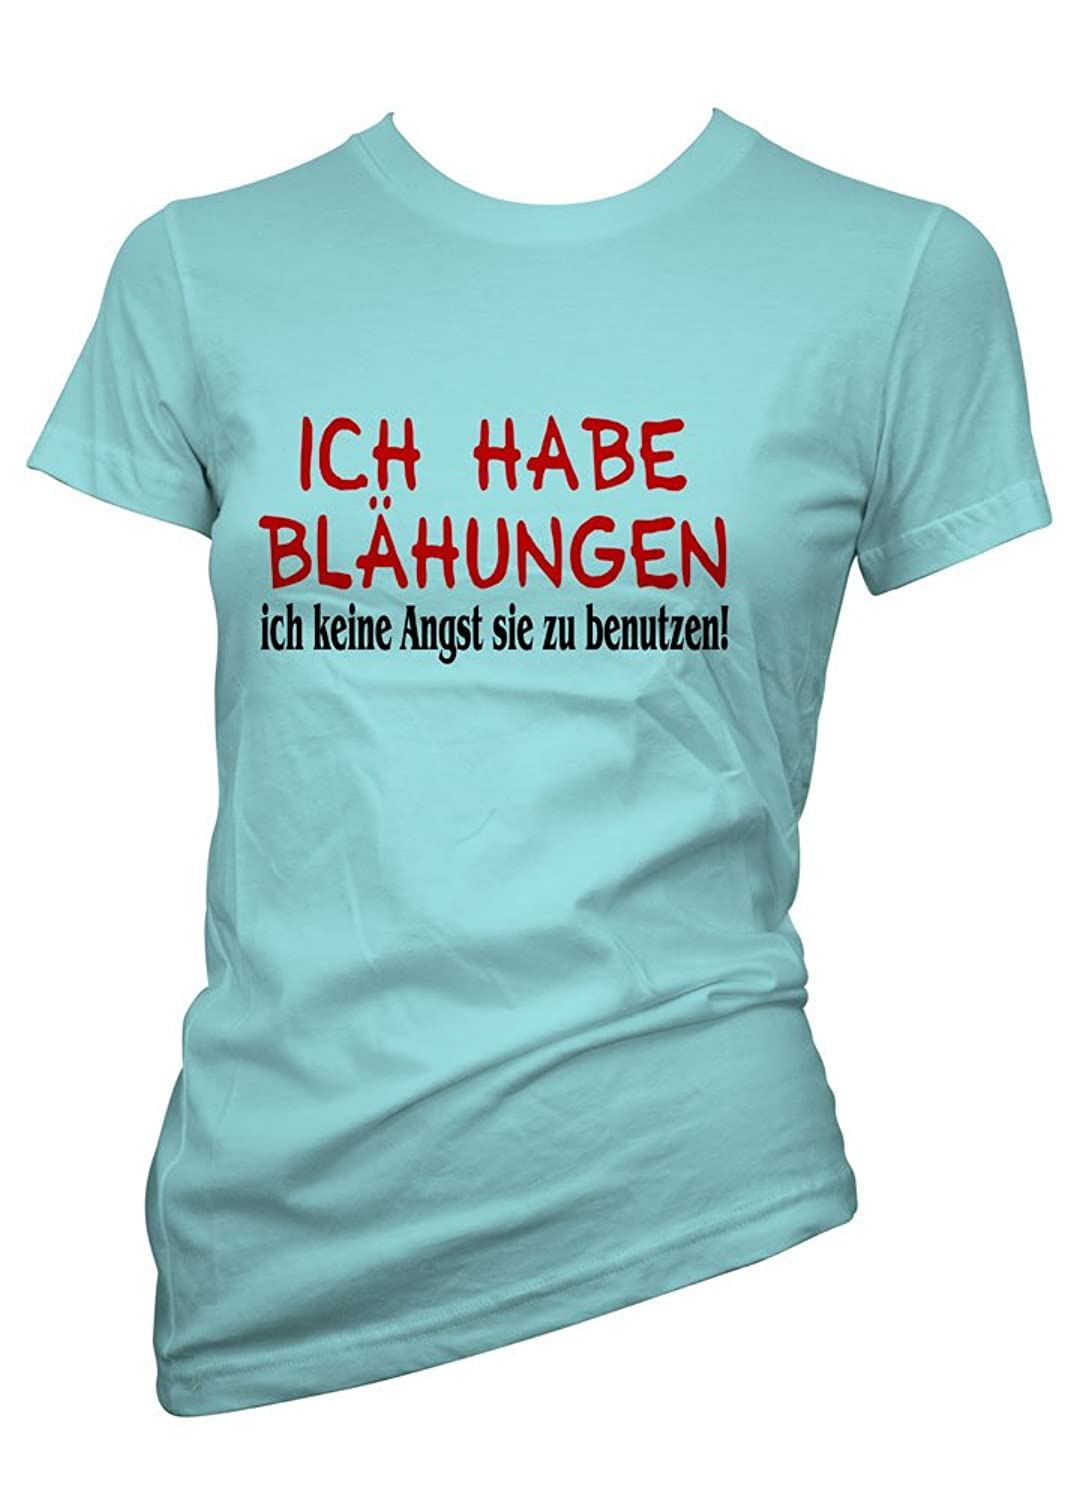 gute spr che t shirt spr che und zitate. Black Bedroom Furniture Sets. Home Design Ideas